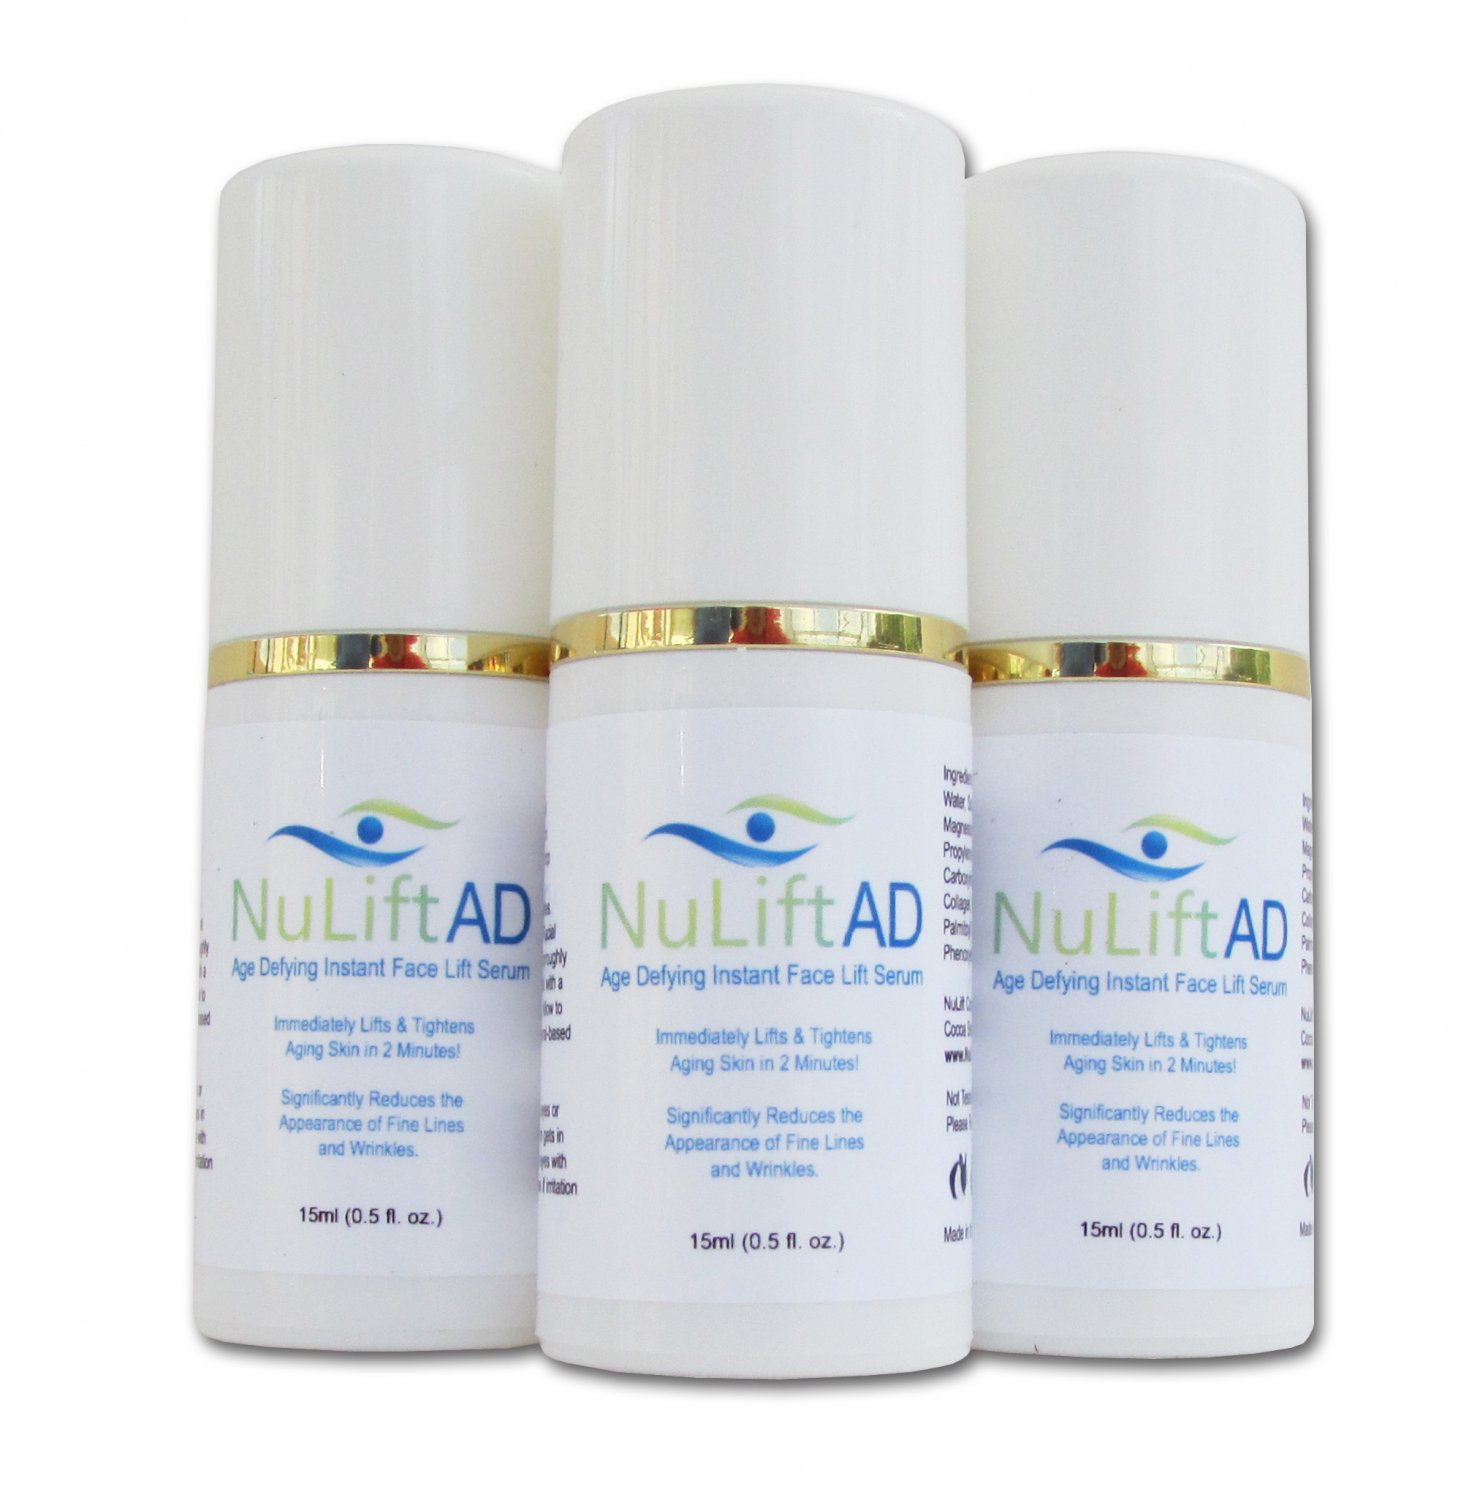 NuLift AD Instant Face Lift Serum - 3 Month Supply